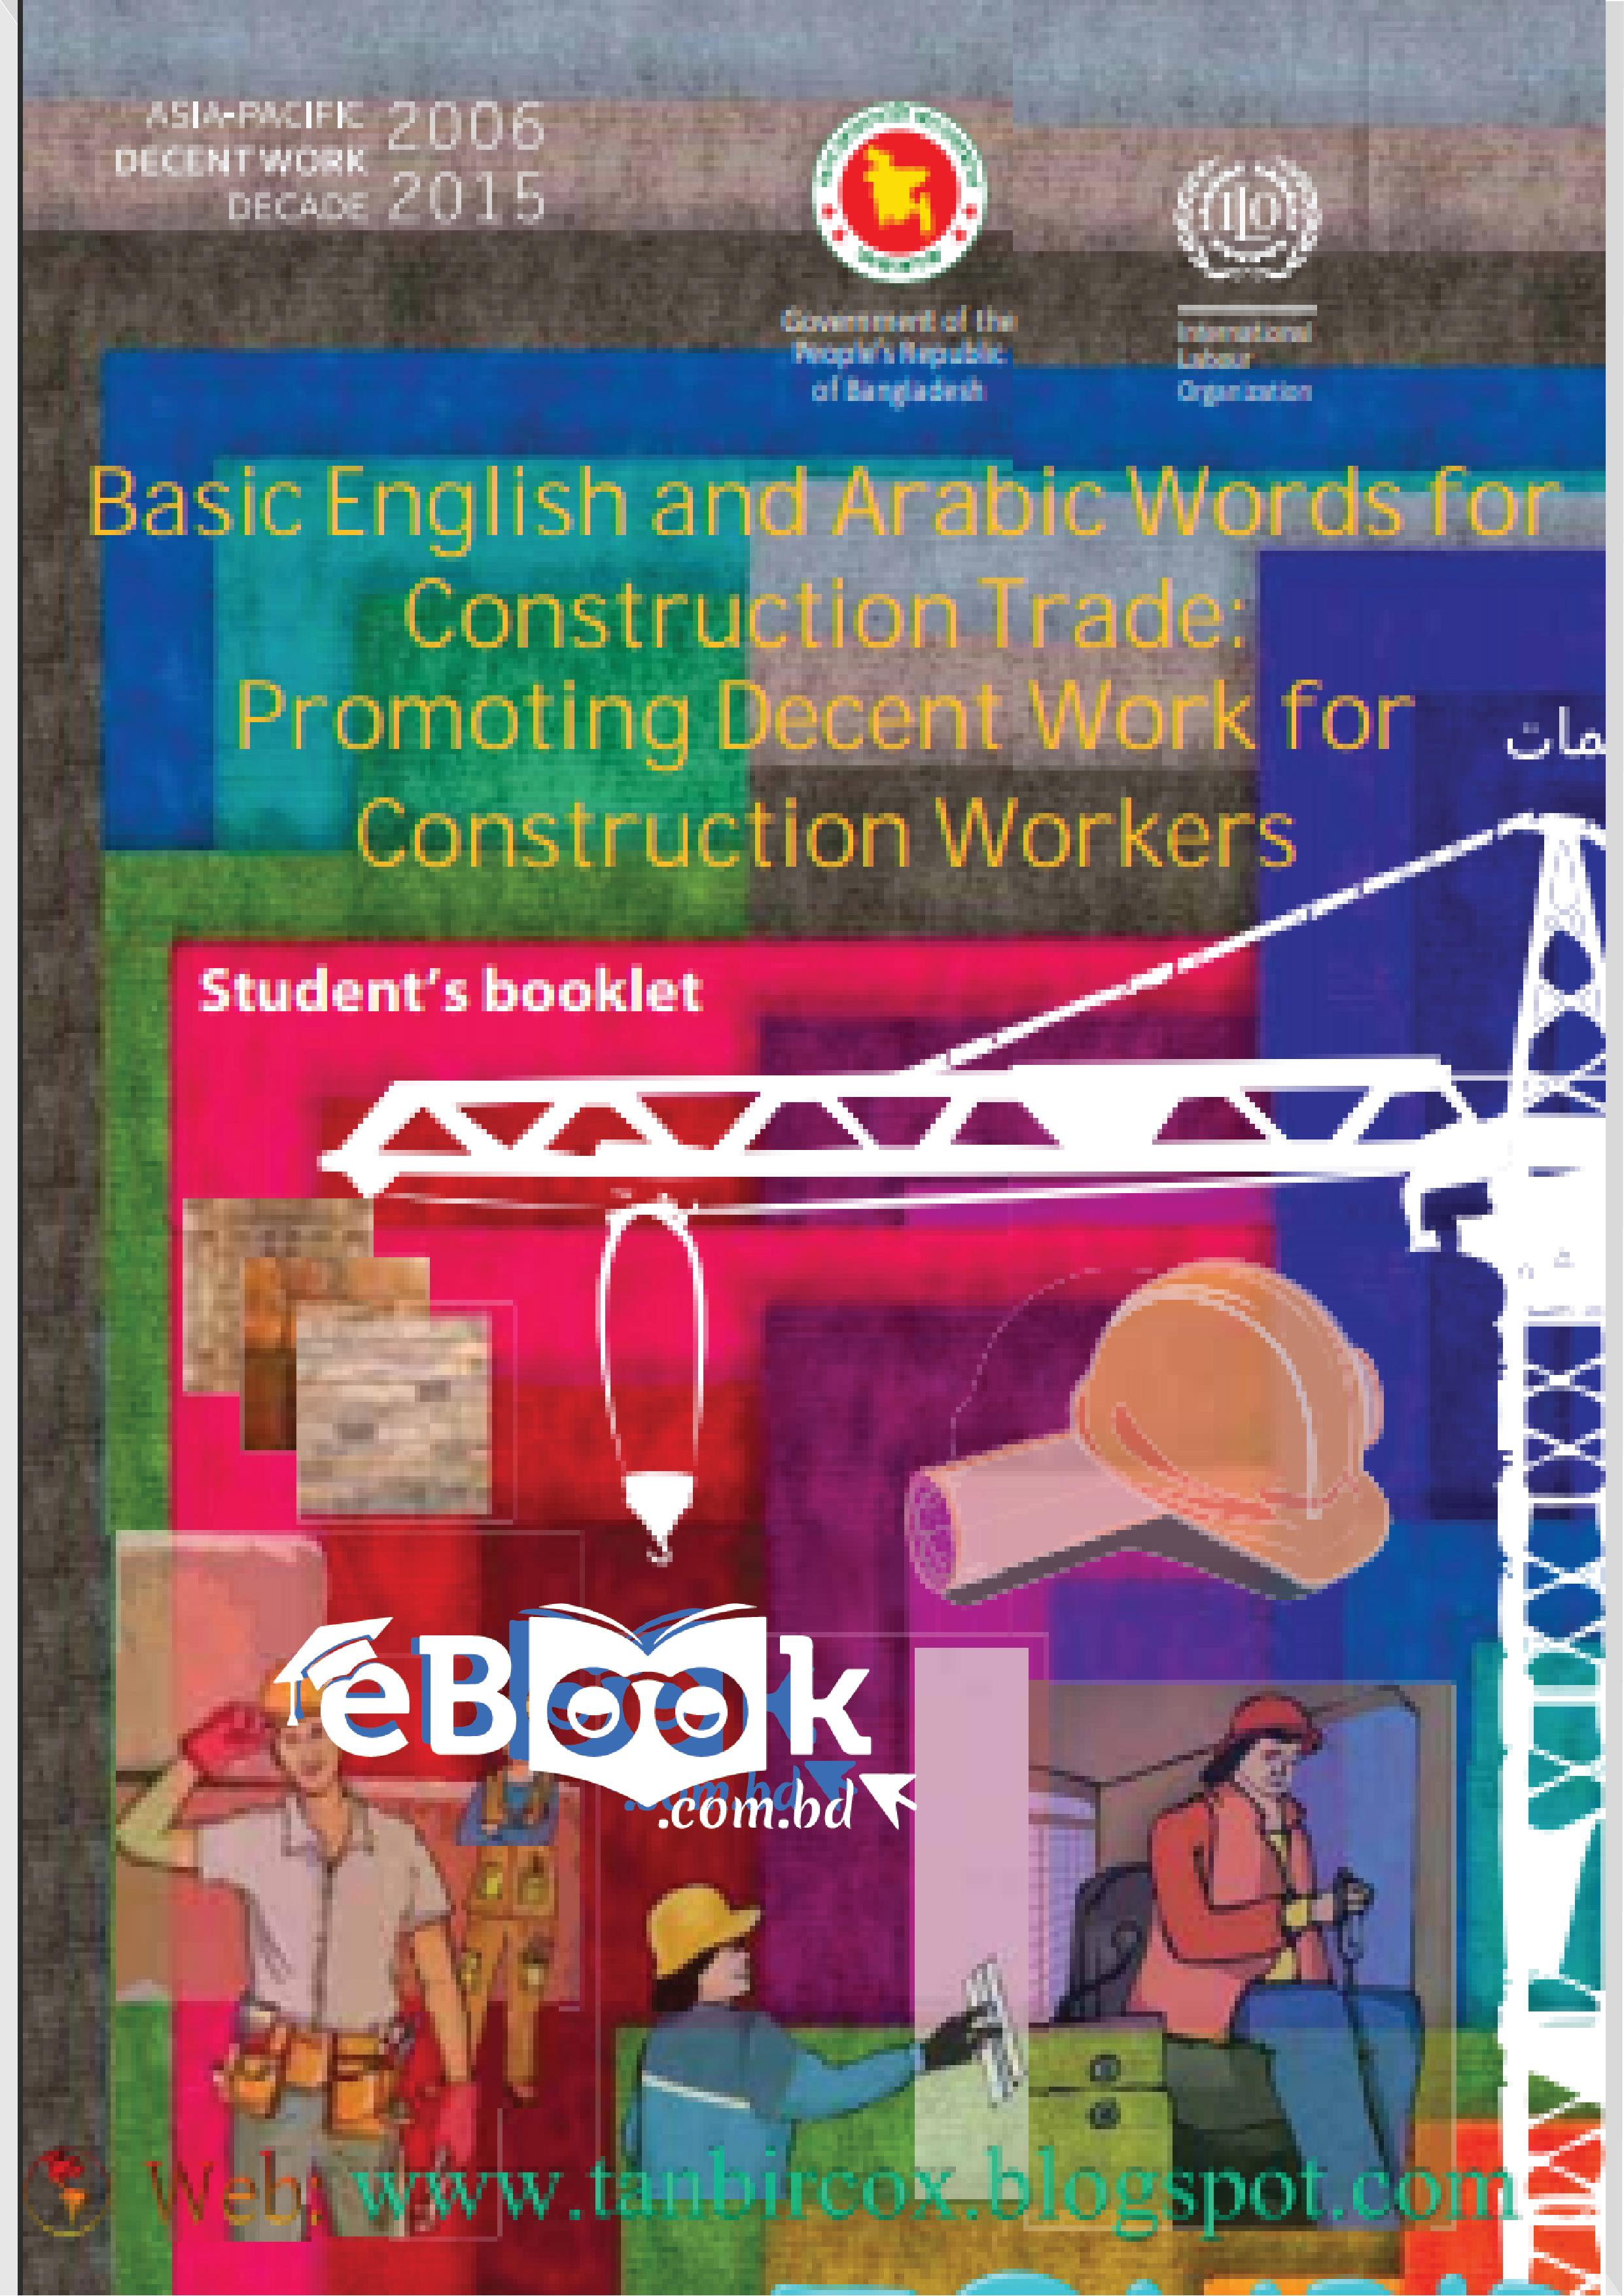 Easy Arabic and English Language Course with bangla for work in Middle East - সহজ আরবি থেকে ইংরেজি ভাষা কোর্স